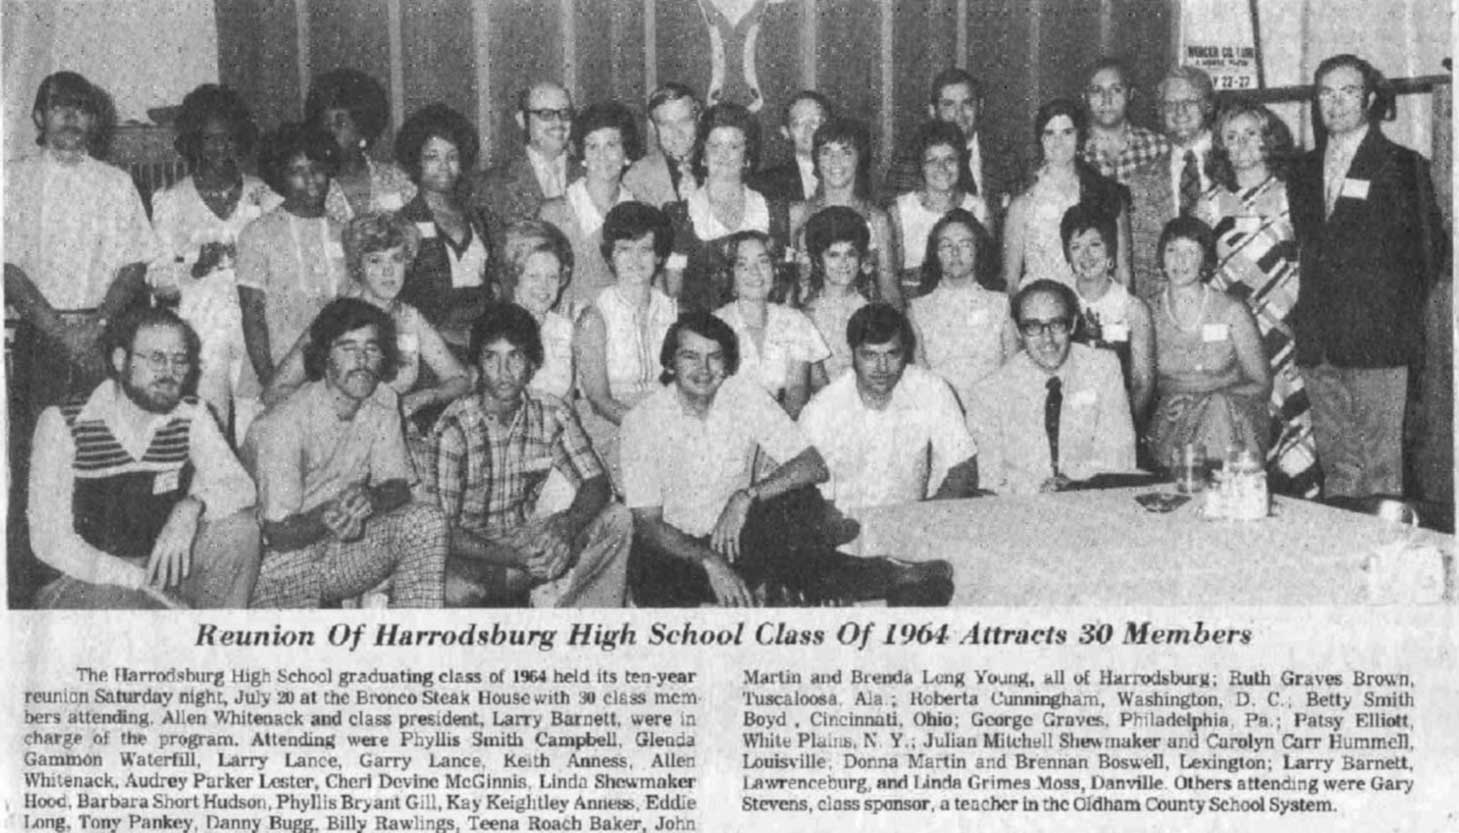 Harrodsburg Herald 1964 Reunion article with photograph